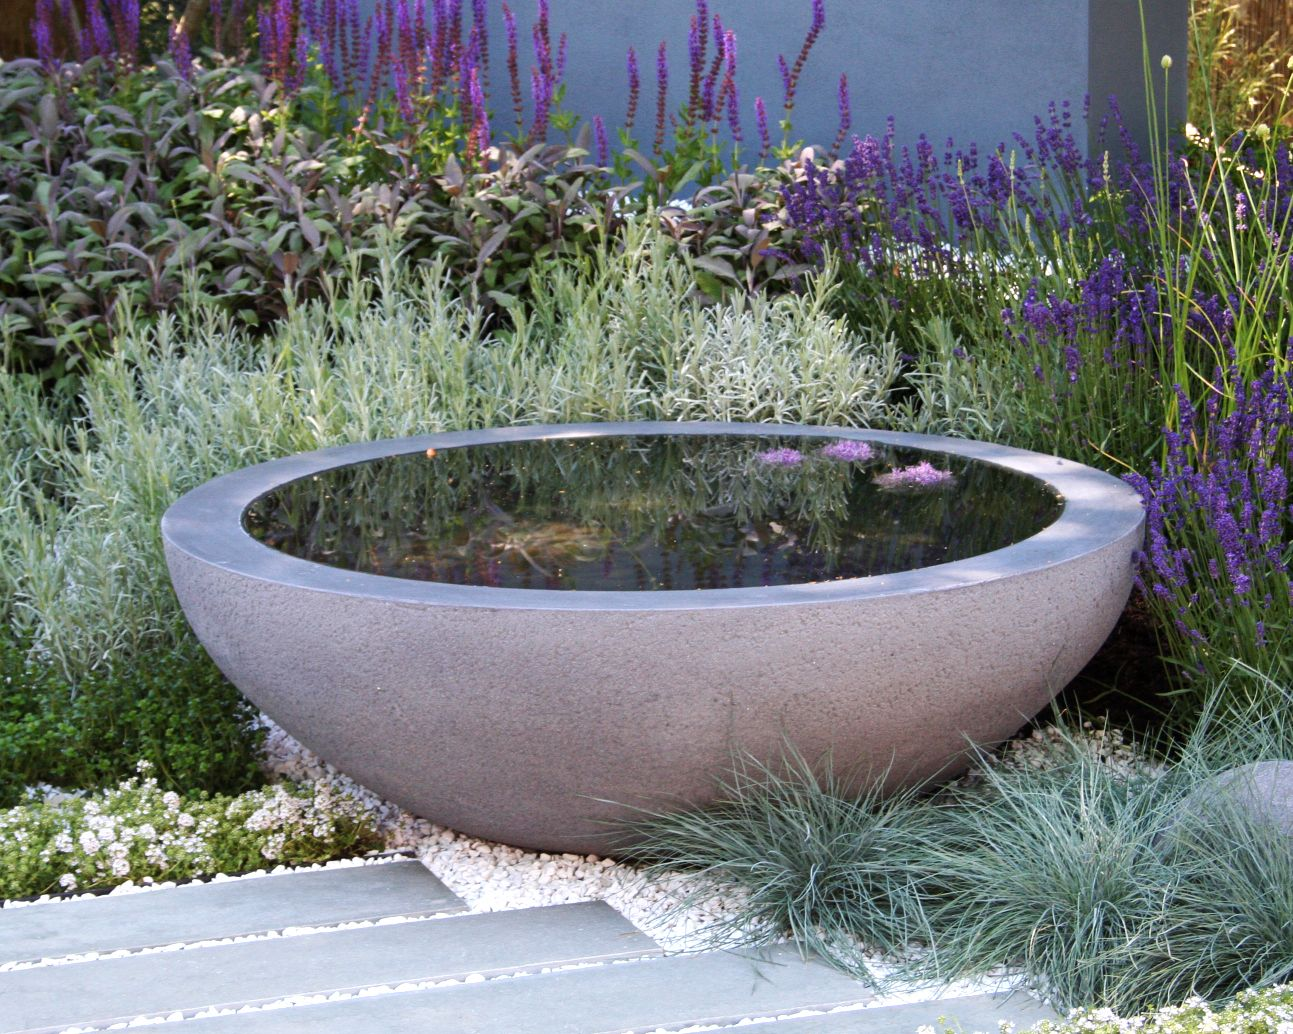 Water Feature Pond Bowl From Urbis With Dry Gravel Planting